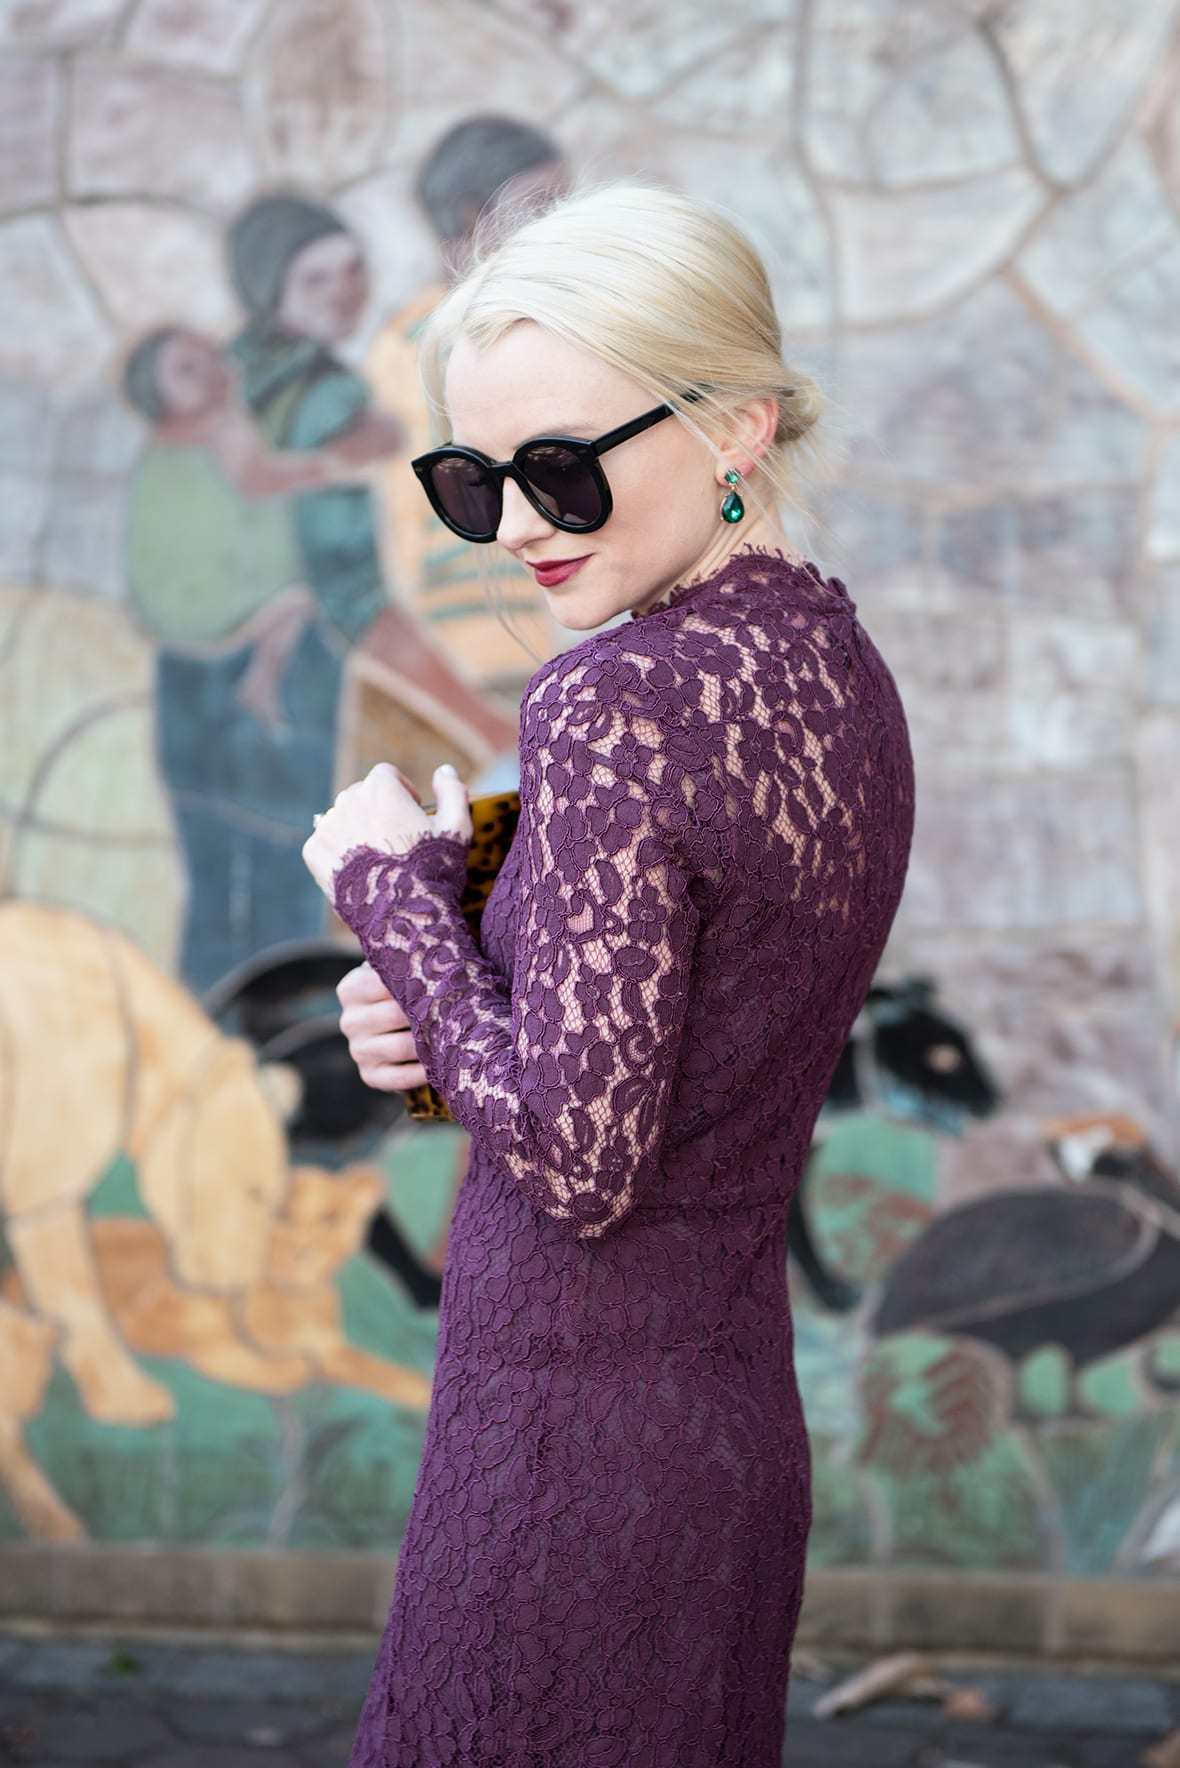 528a5d4eecba How To Style A Purple Lace Dress - Poor Little It Girl